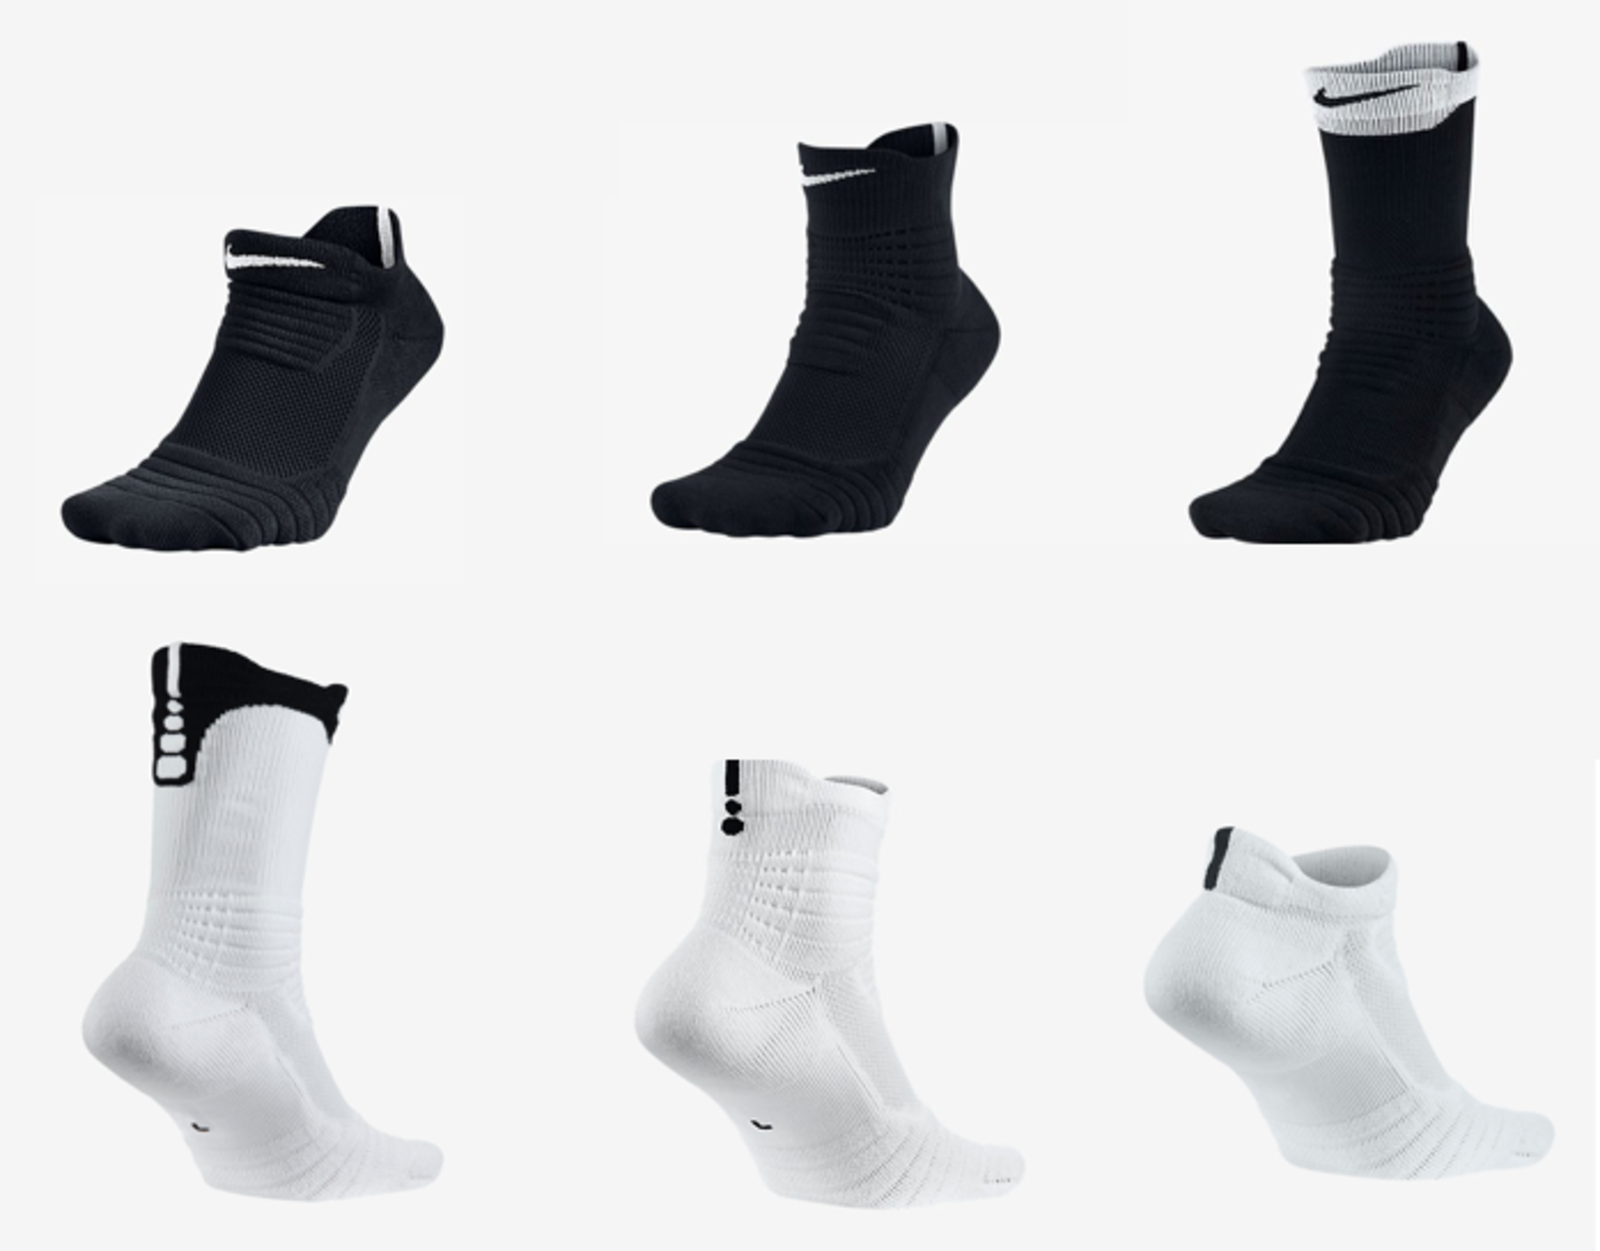 2016 Nike Elite Versatility Socks Deliver Exceptional ...